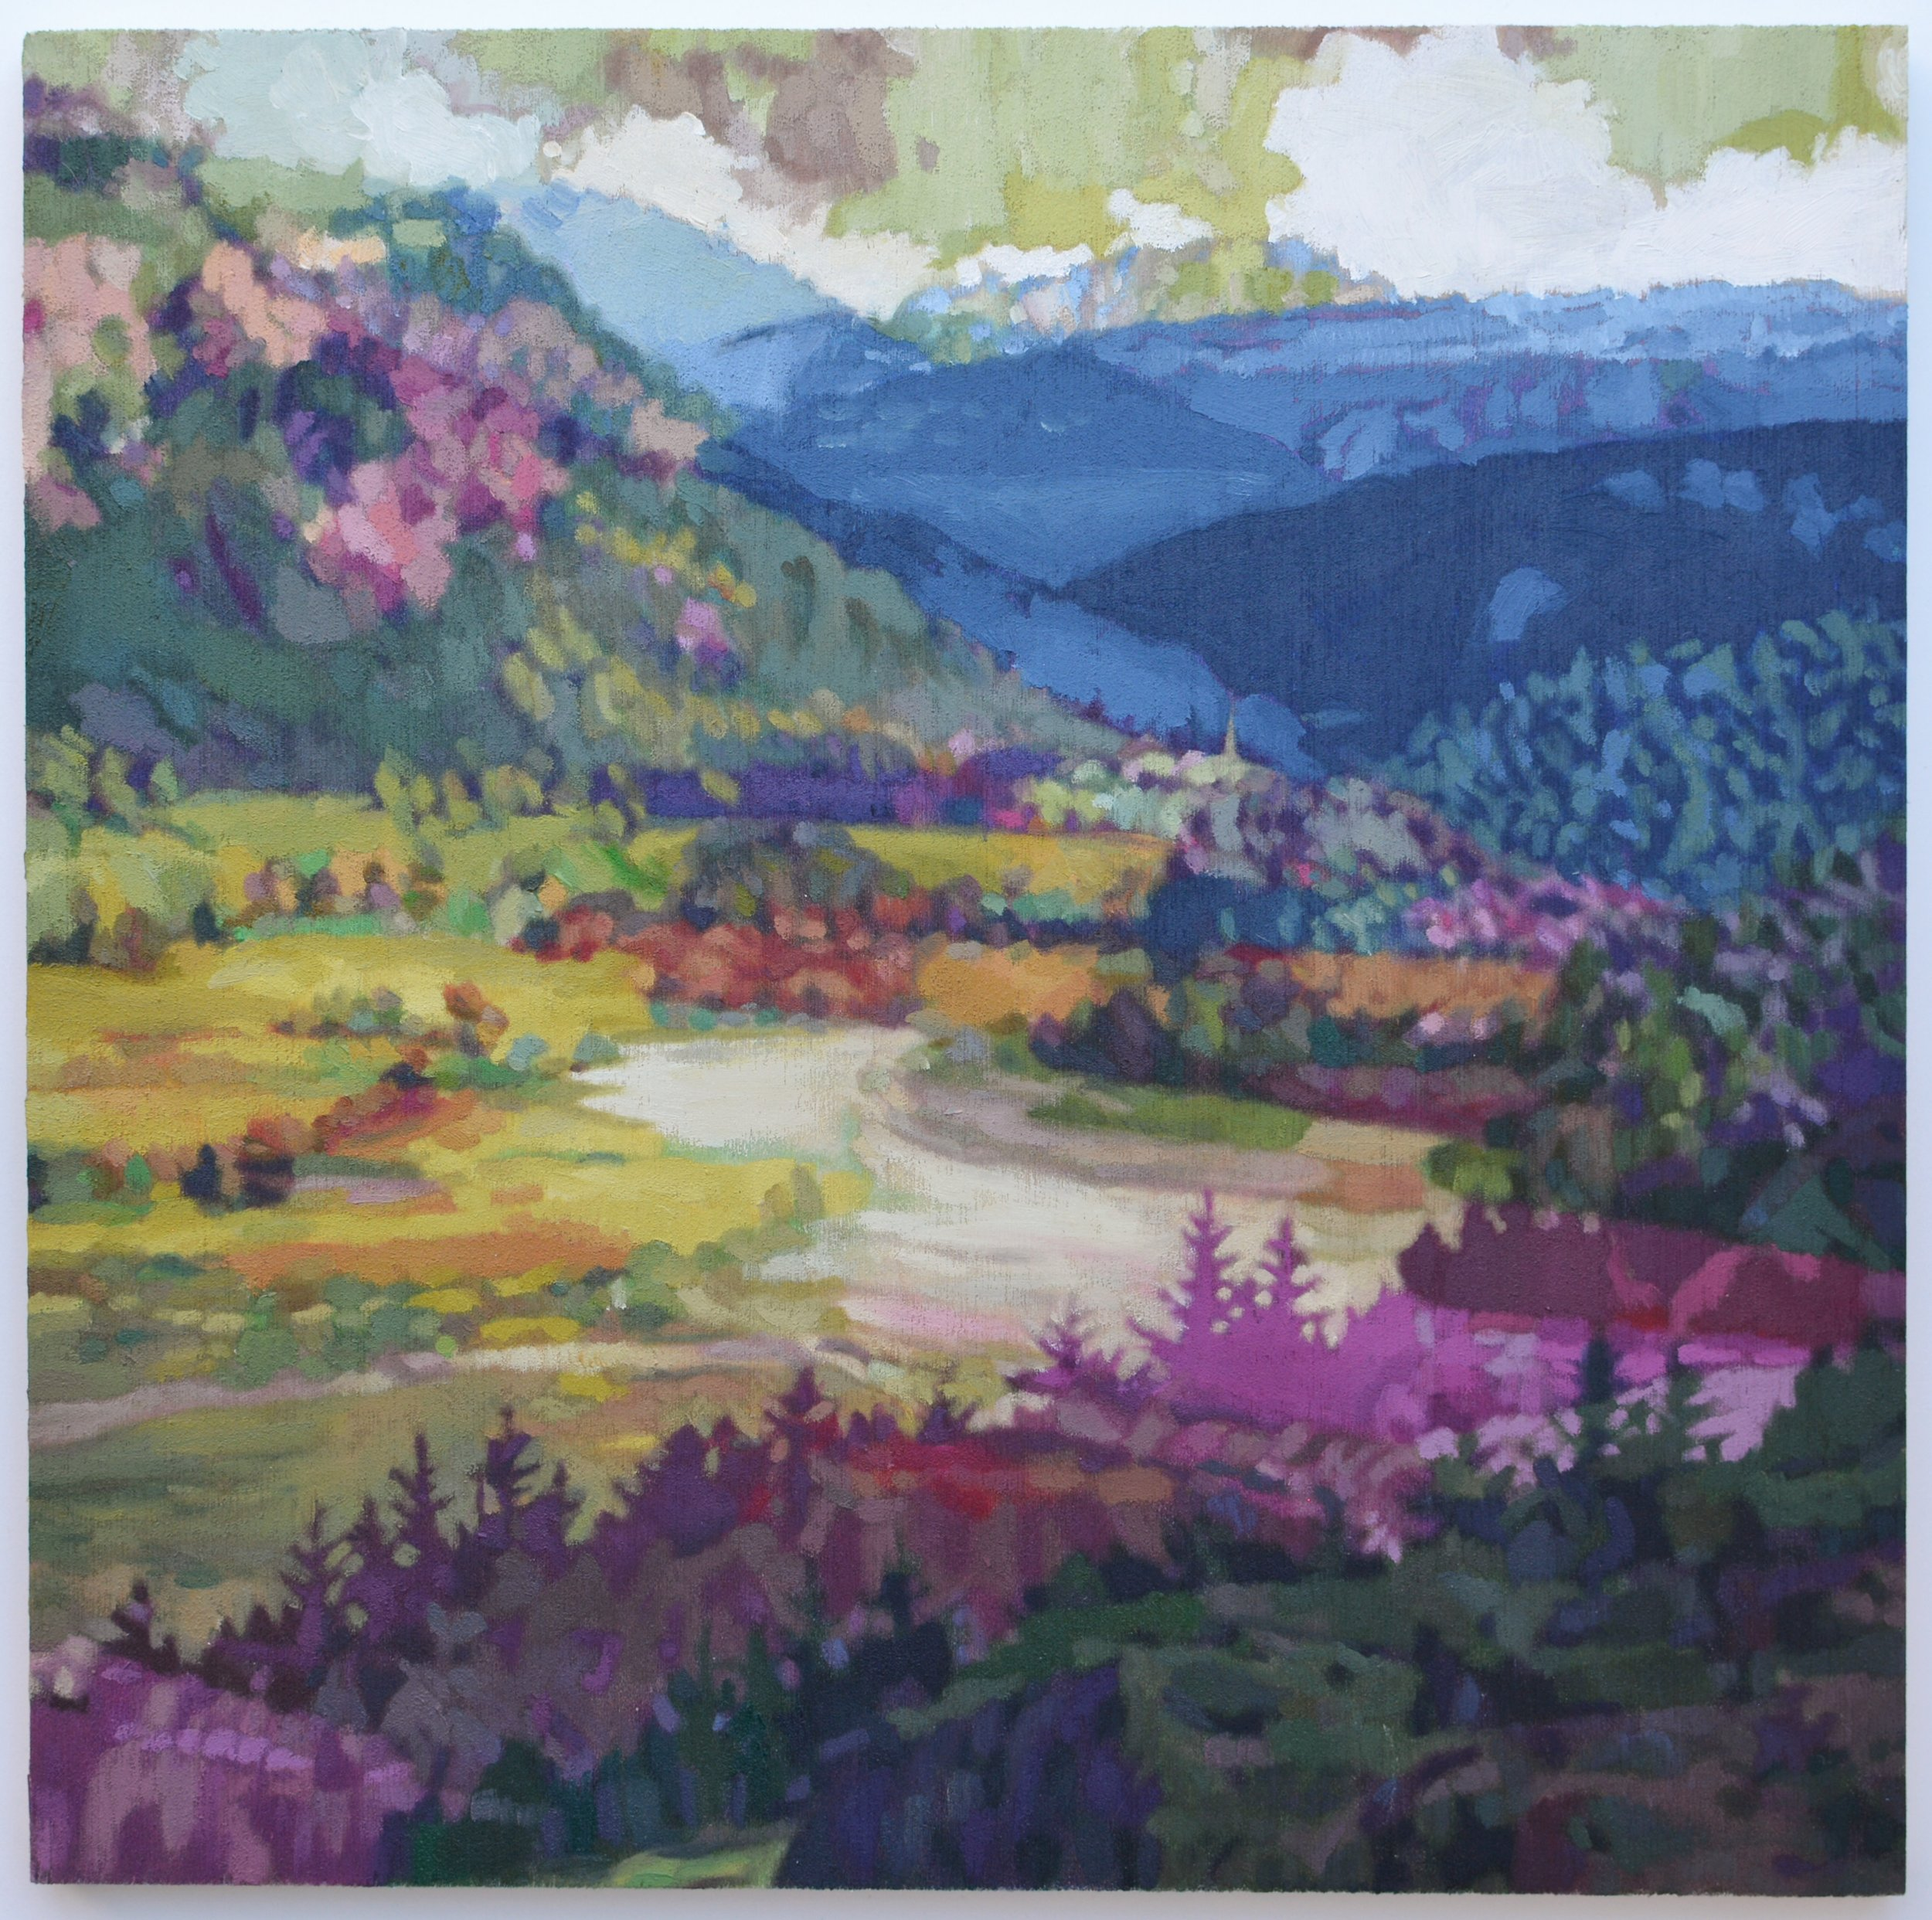 Ribbon Lake (Magenta), oil on wood, 20x20cm, 2018